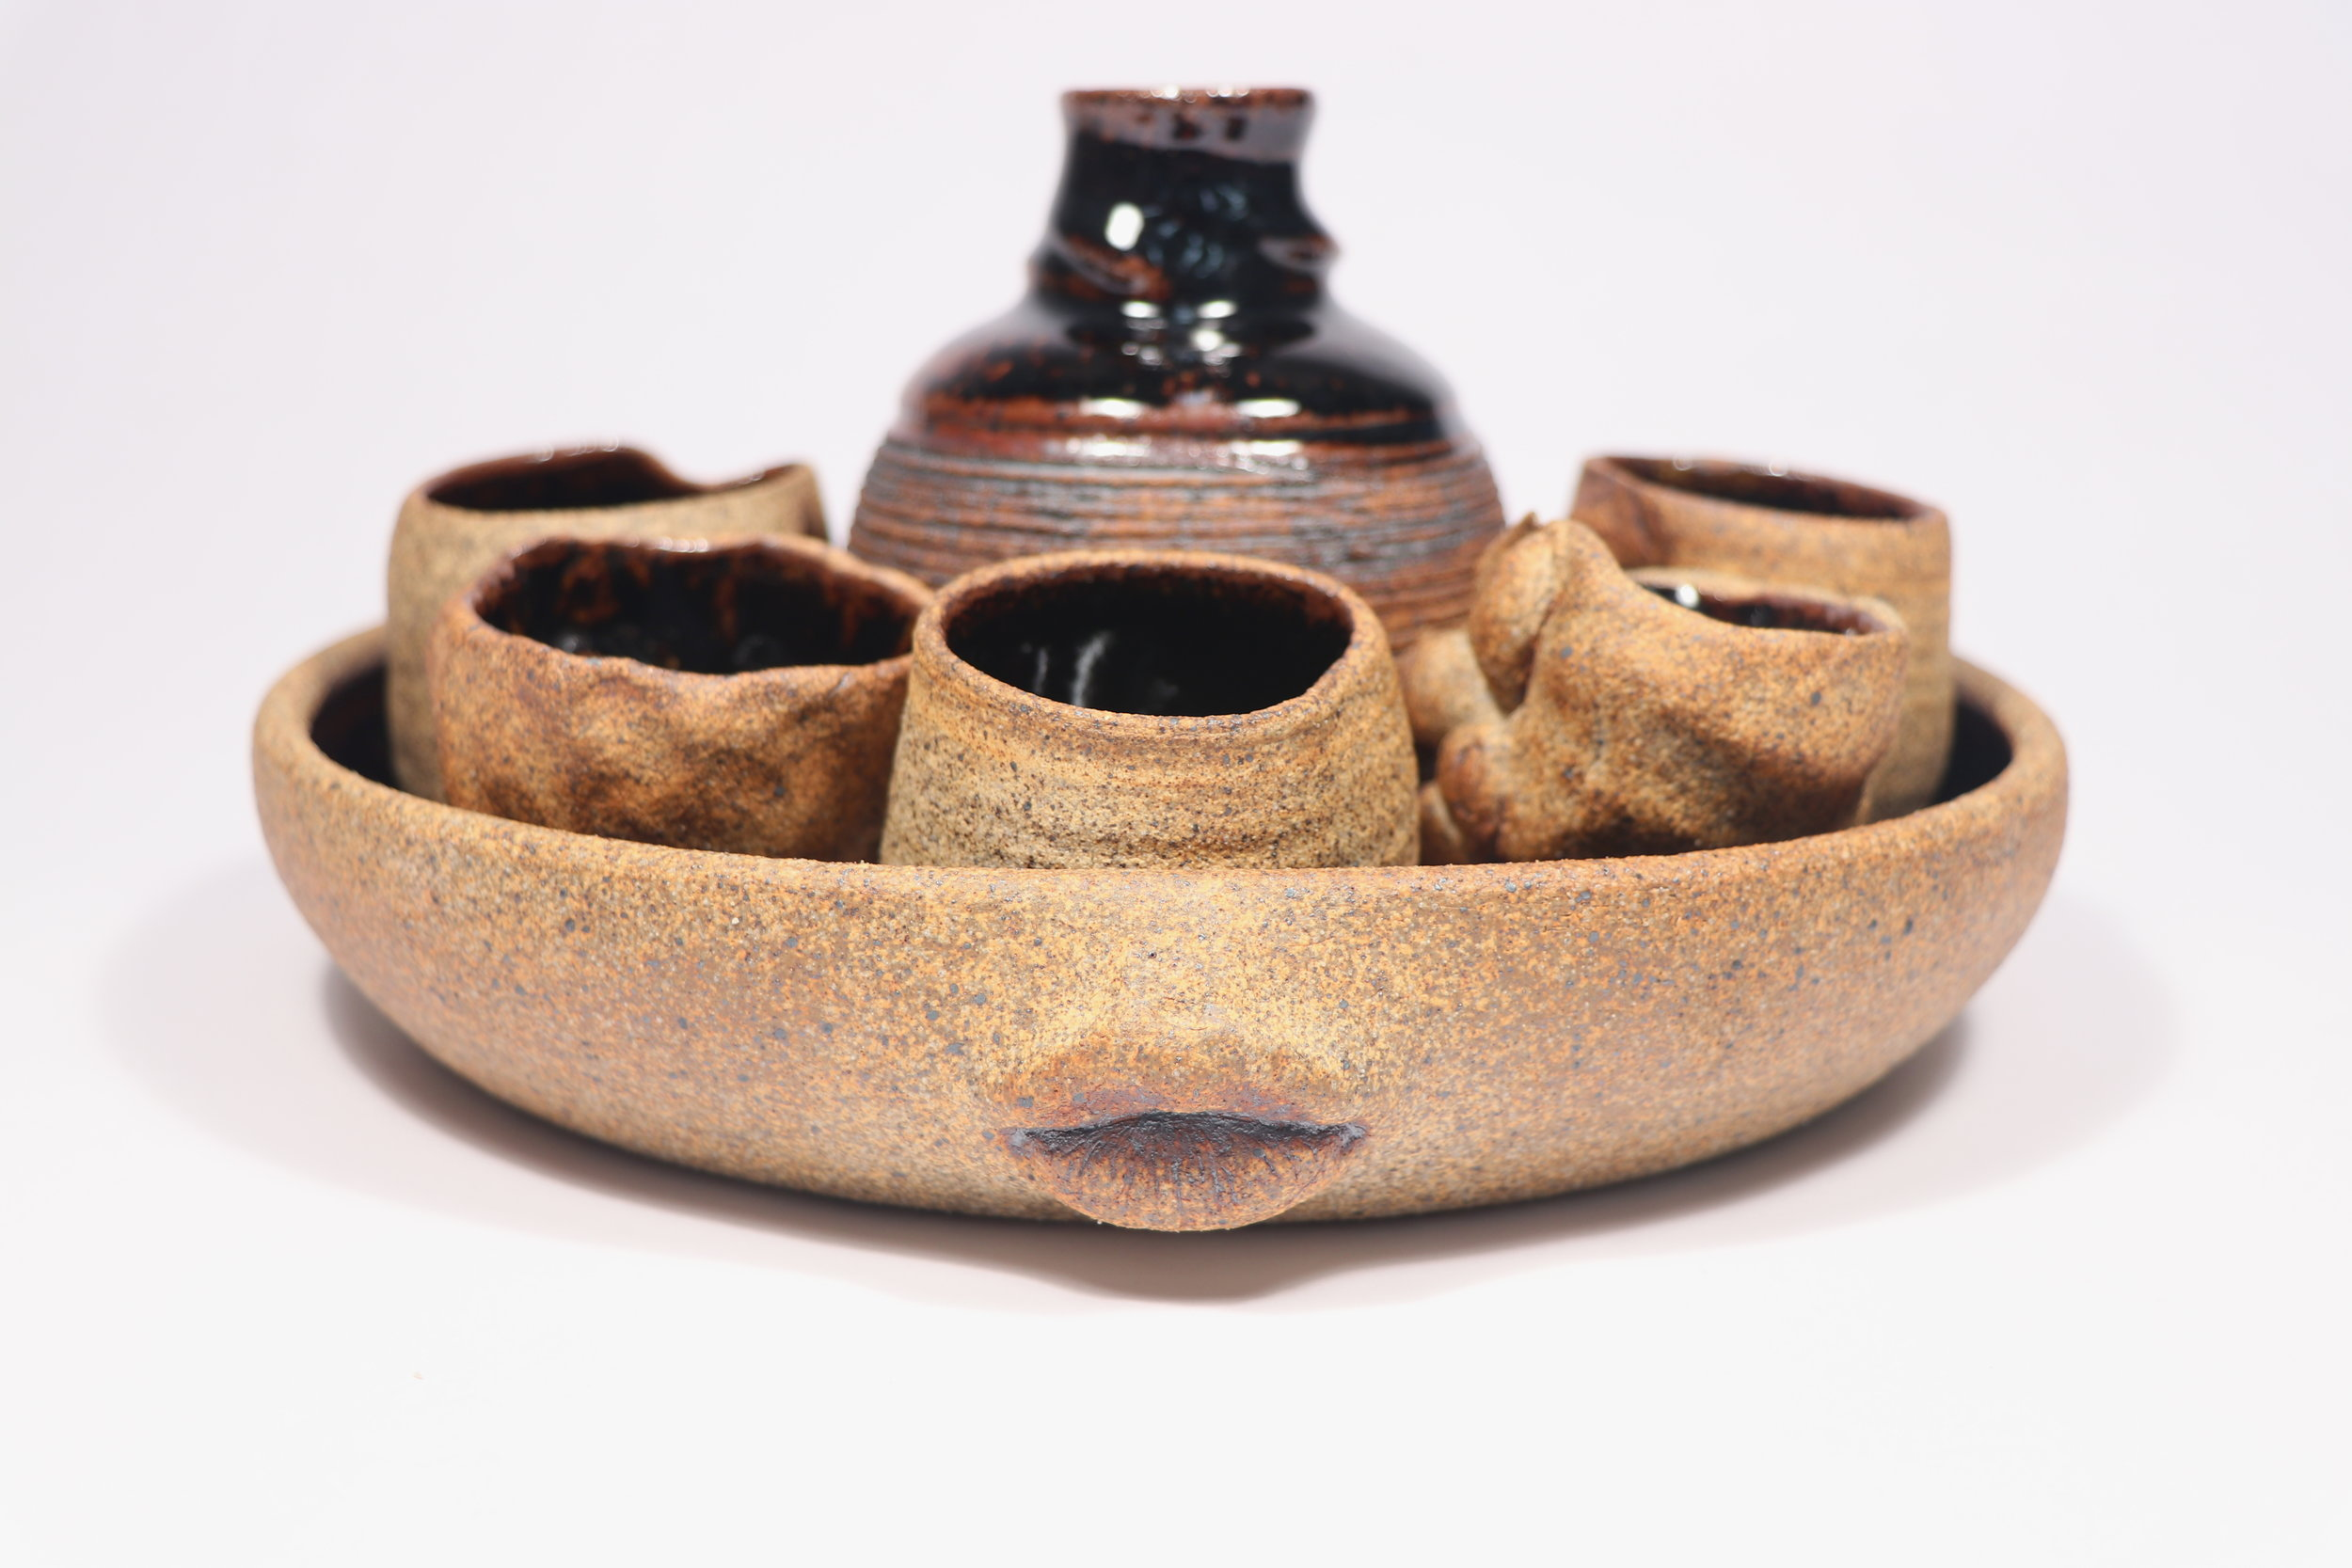 Sake set: The Consecration, Ceramics, Cone 10 Reduction, Tray: 9.5 x 7 x 1.75in, 2017. Cups: 7.5 (belly) x 2.5inBottle: 11 (belly) x 5in